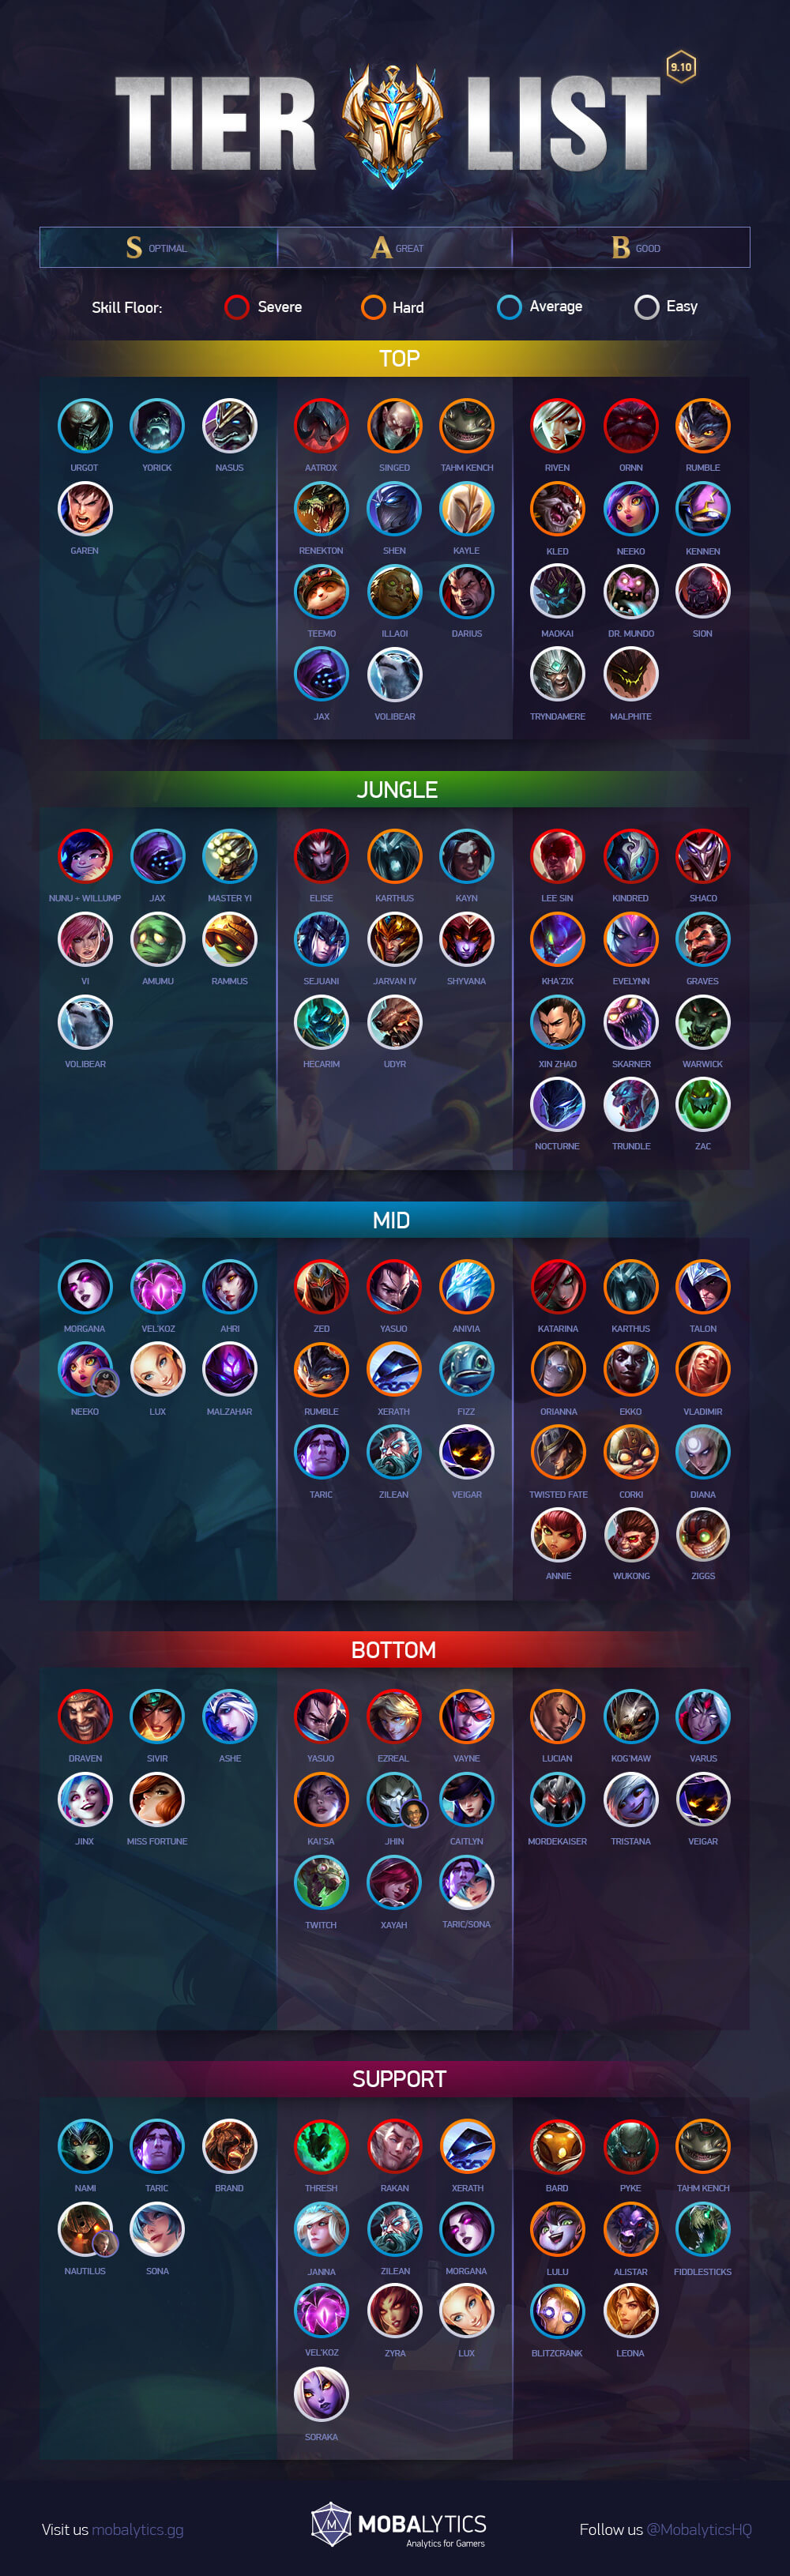 tier list 9.10 updated